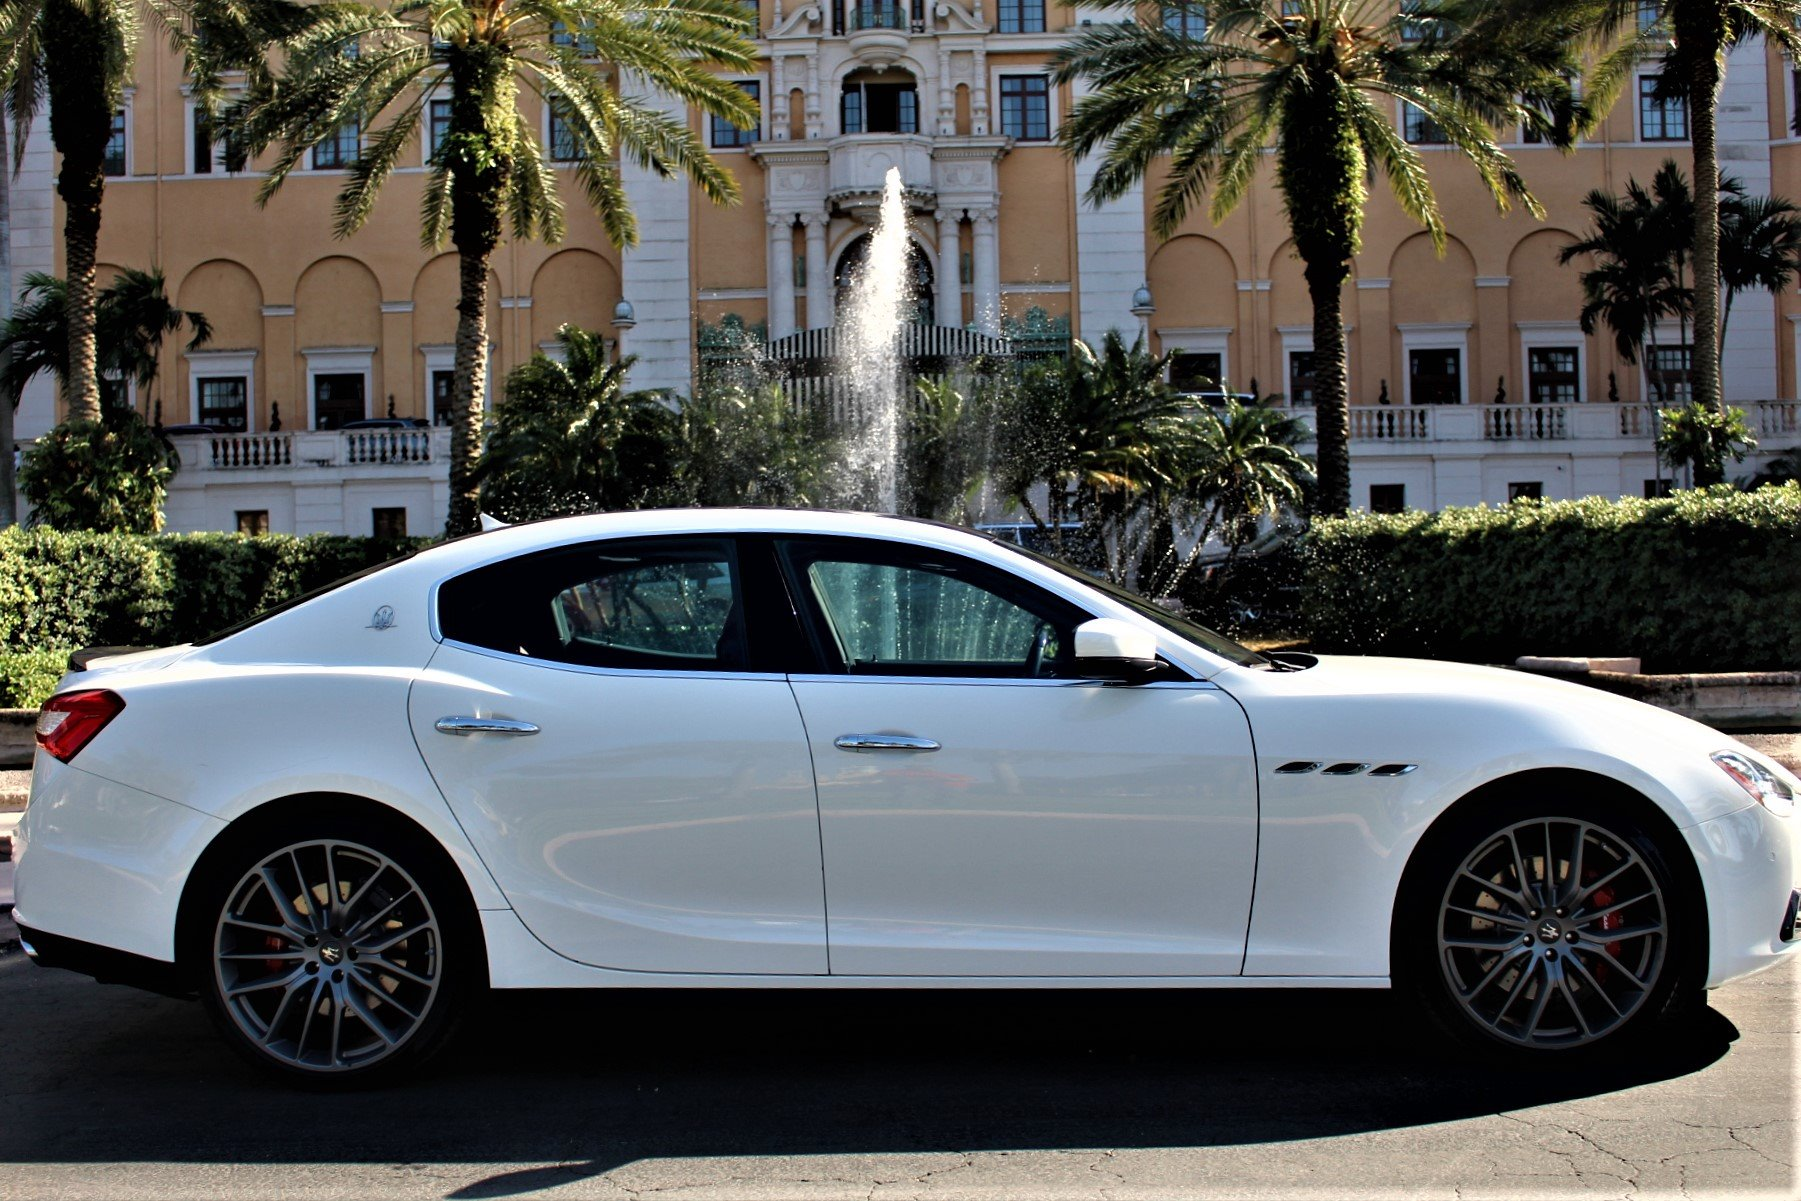 Used 2017 Maserati Ghibli S S for sale Sold at The Gables Sports Cars in Miami FL 33146 3